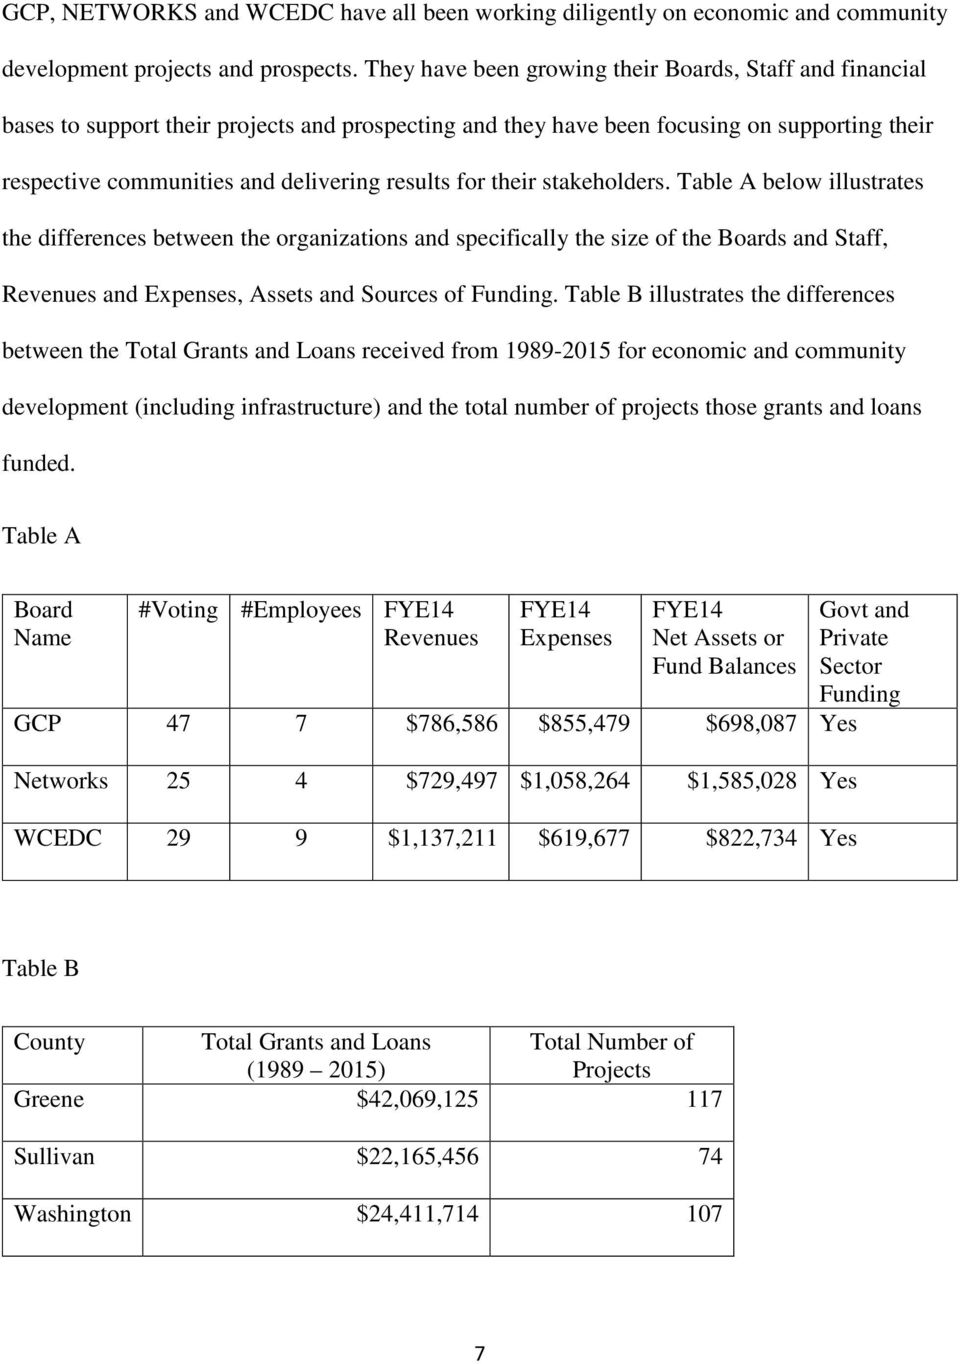 for their stakeholders. Table A below illustrates the differences between the organizations and specifically the size of the Boards and Staff, Revenues and Expenses, Assets and Sources of Funding.